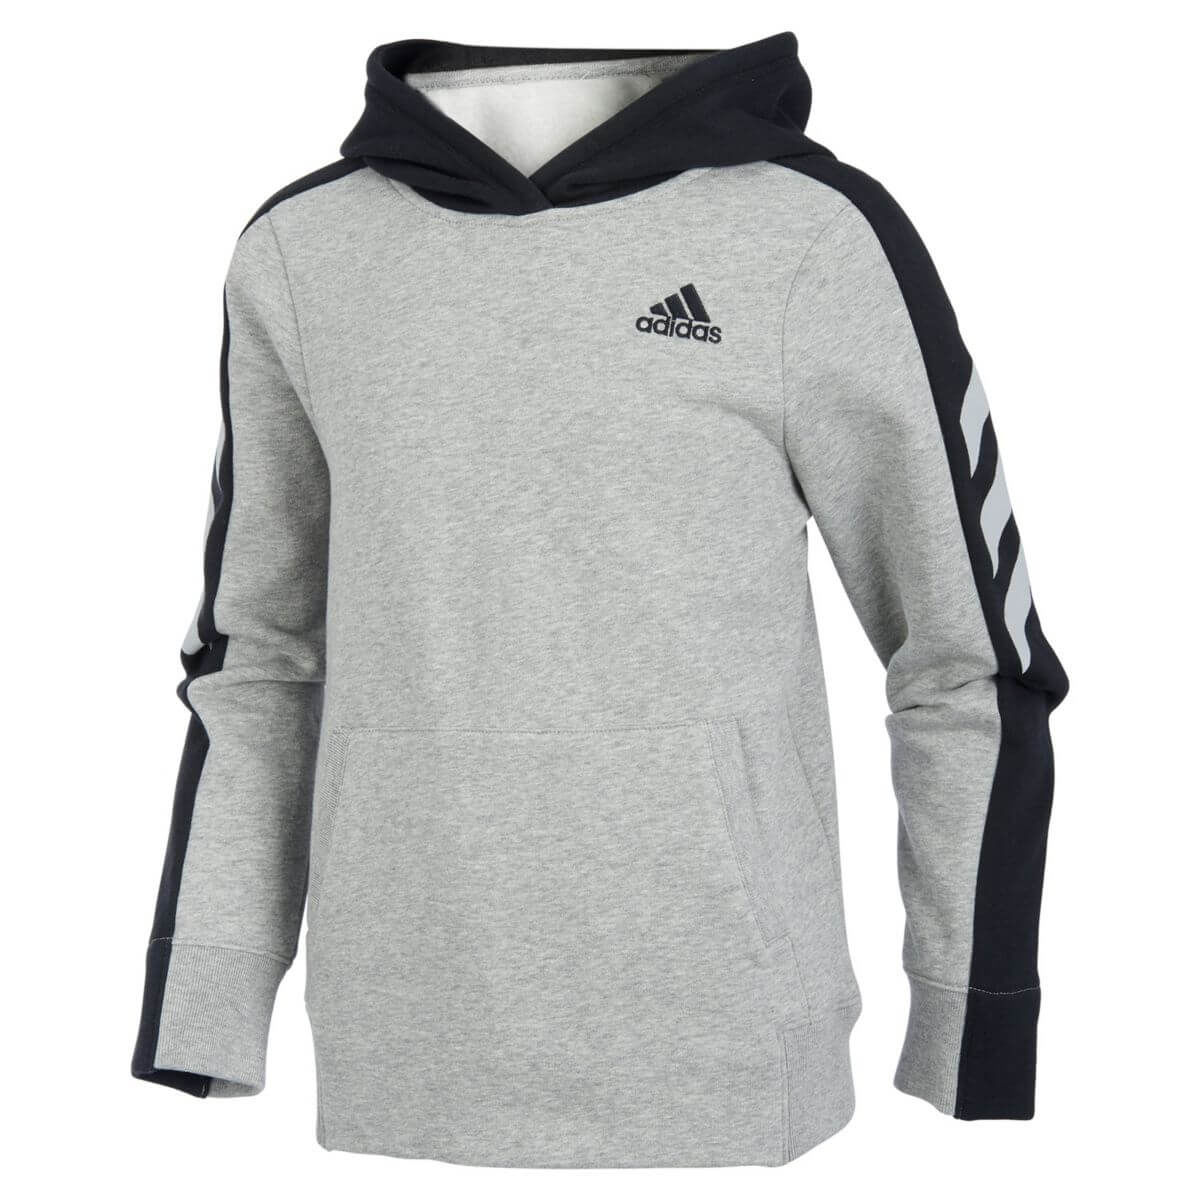 adidas Altitude Boys Heather Pullover Hoodie [MSRP: $45.00]